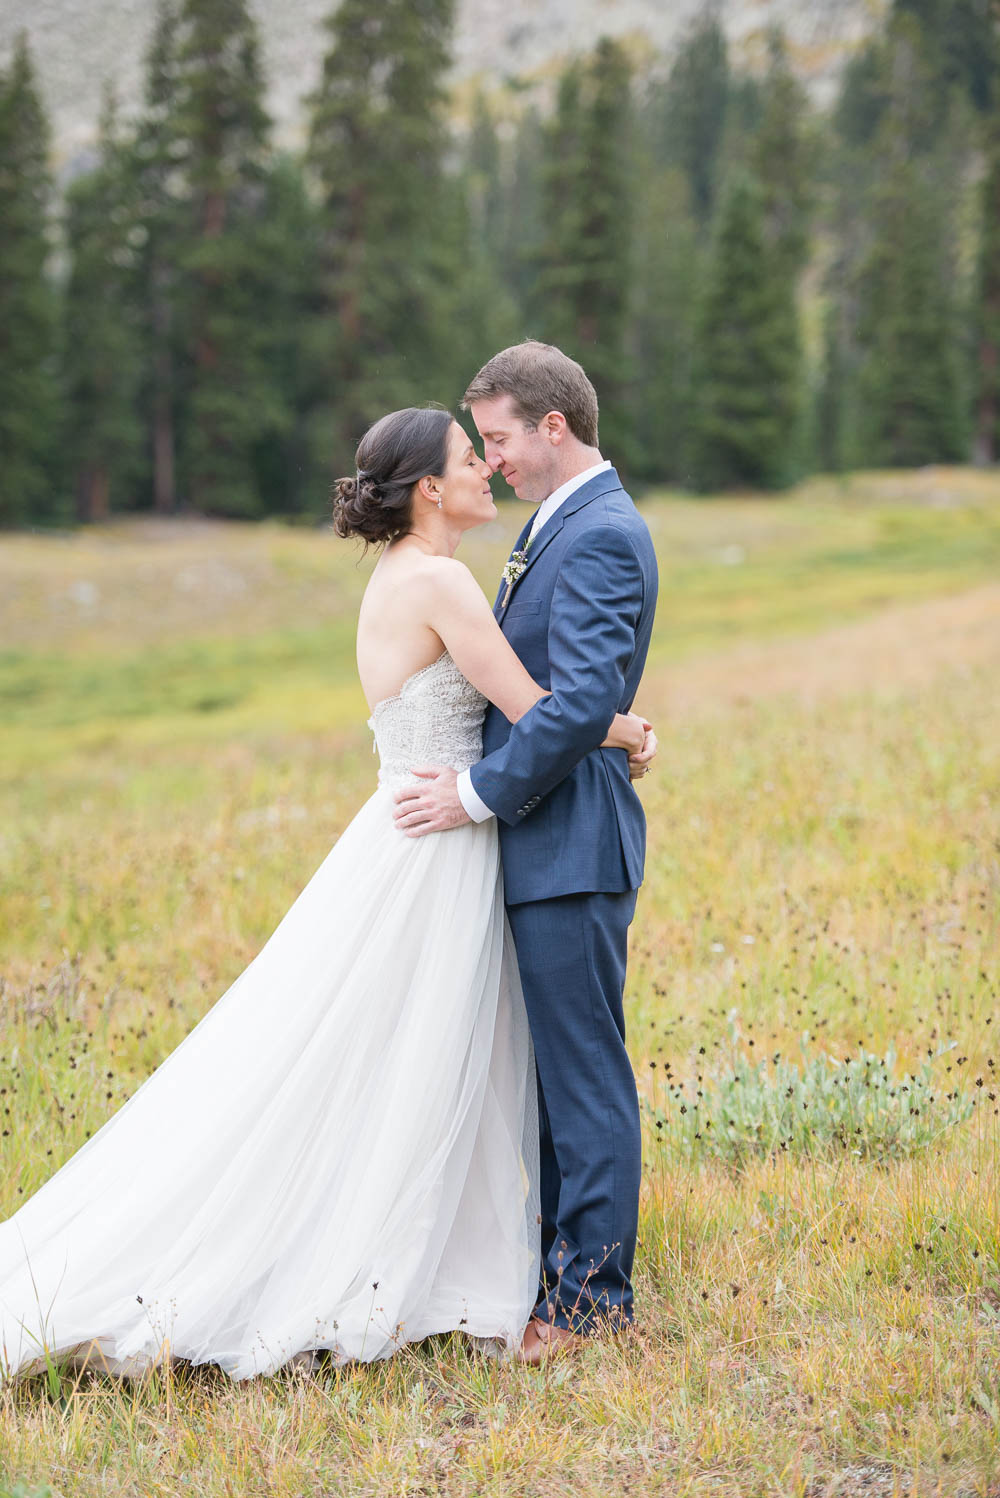 AshleighMillerWeddings-JennyAllen-ArapahoeBasin-Keystone-Colorado-2761.jpg